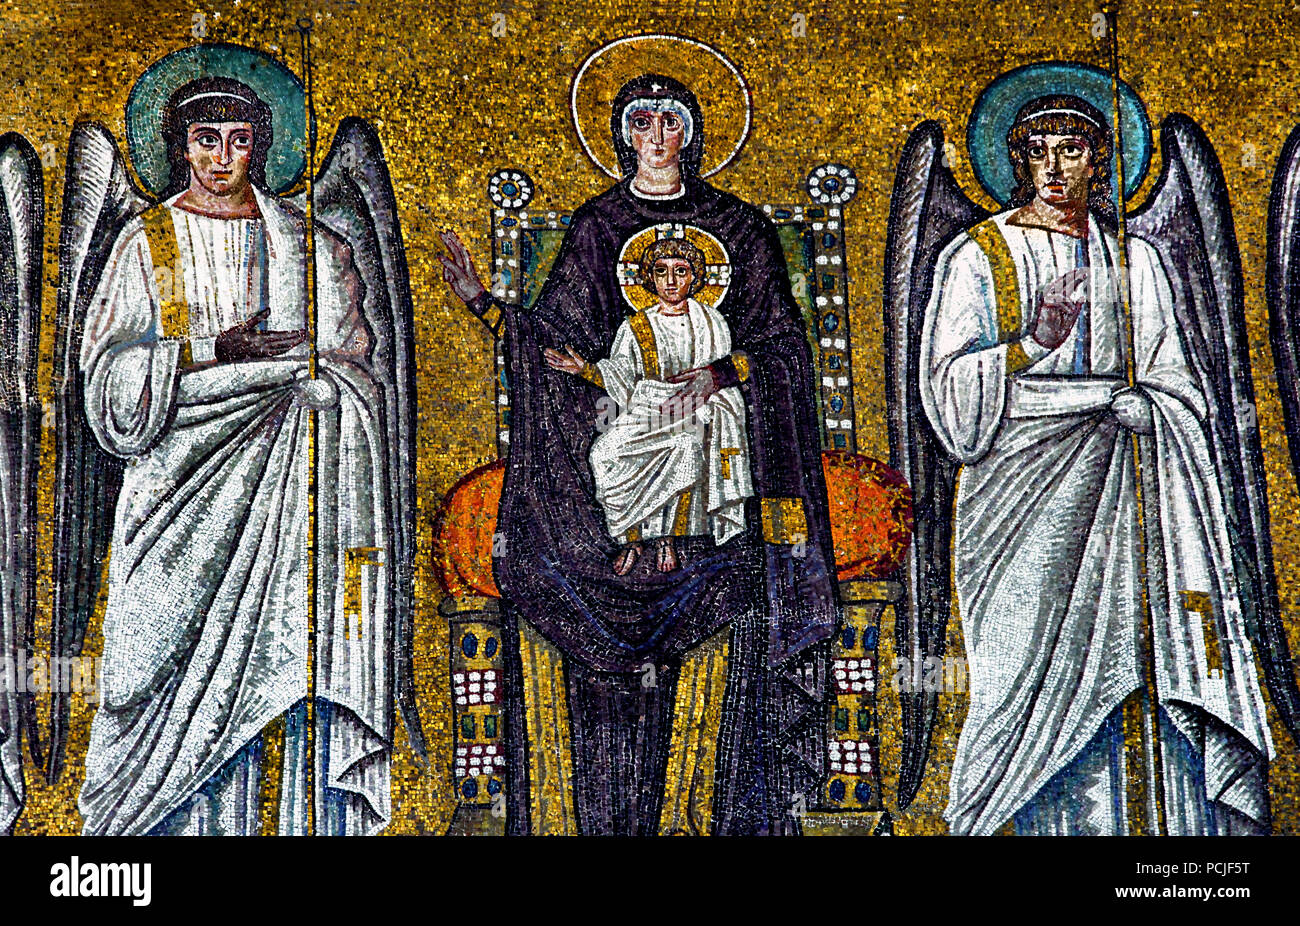 Byzantine Mosaic With Jesus Christ And Angels Imagenes De Stock